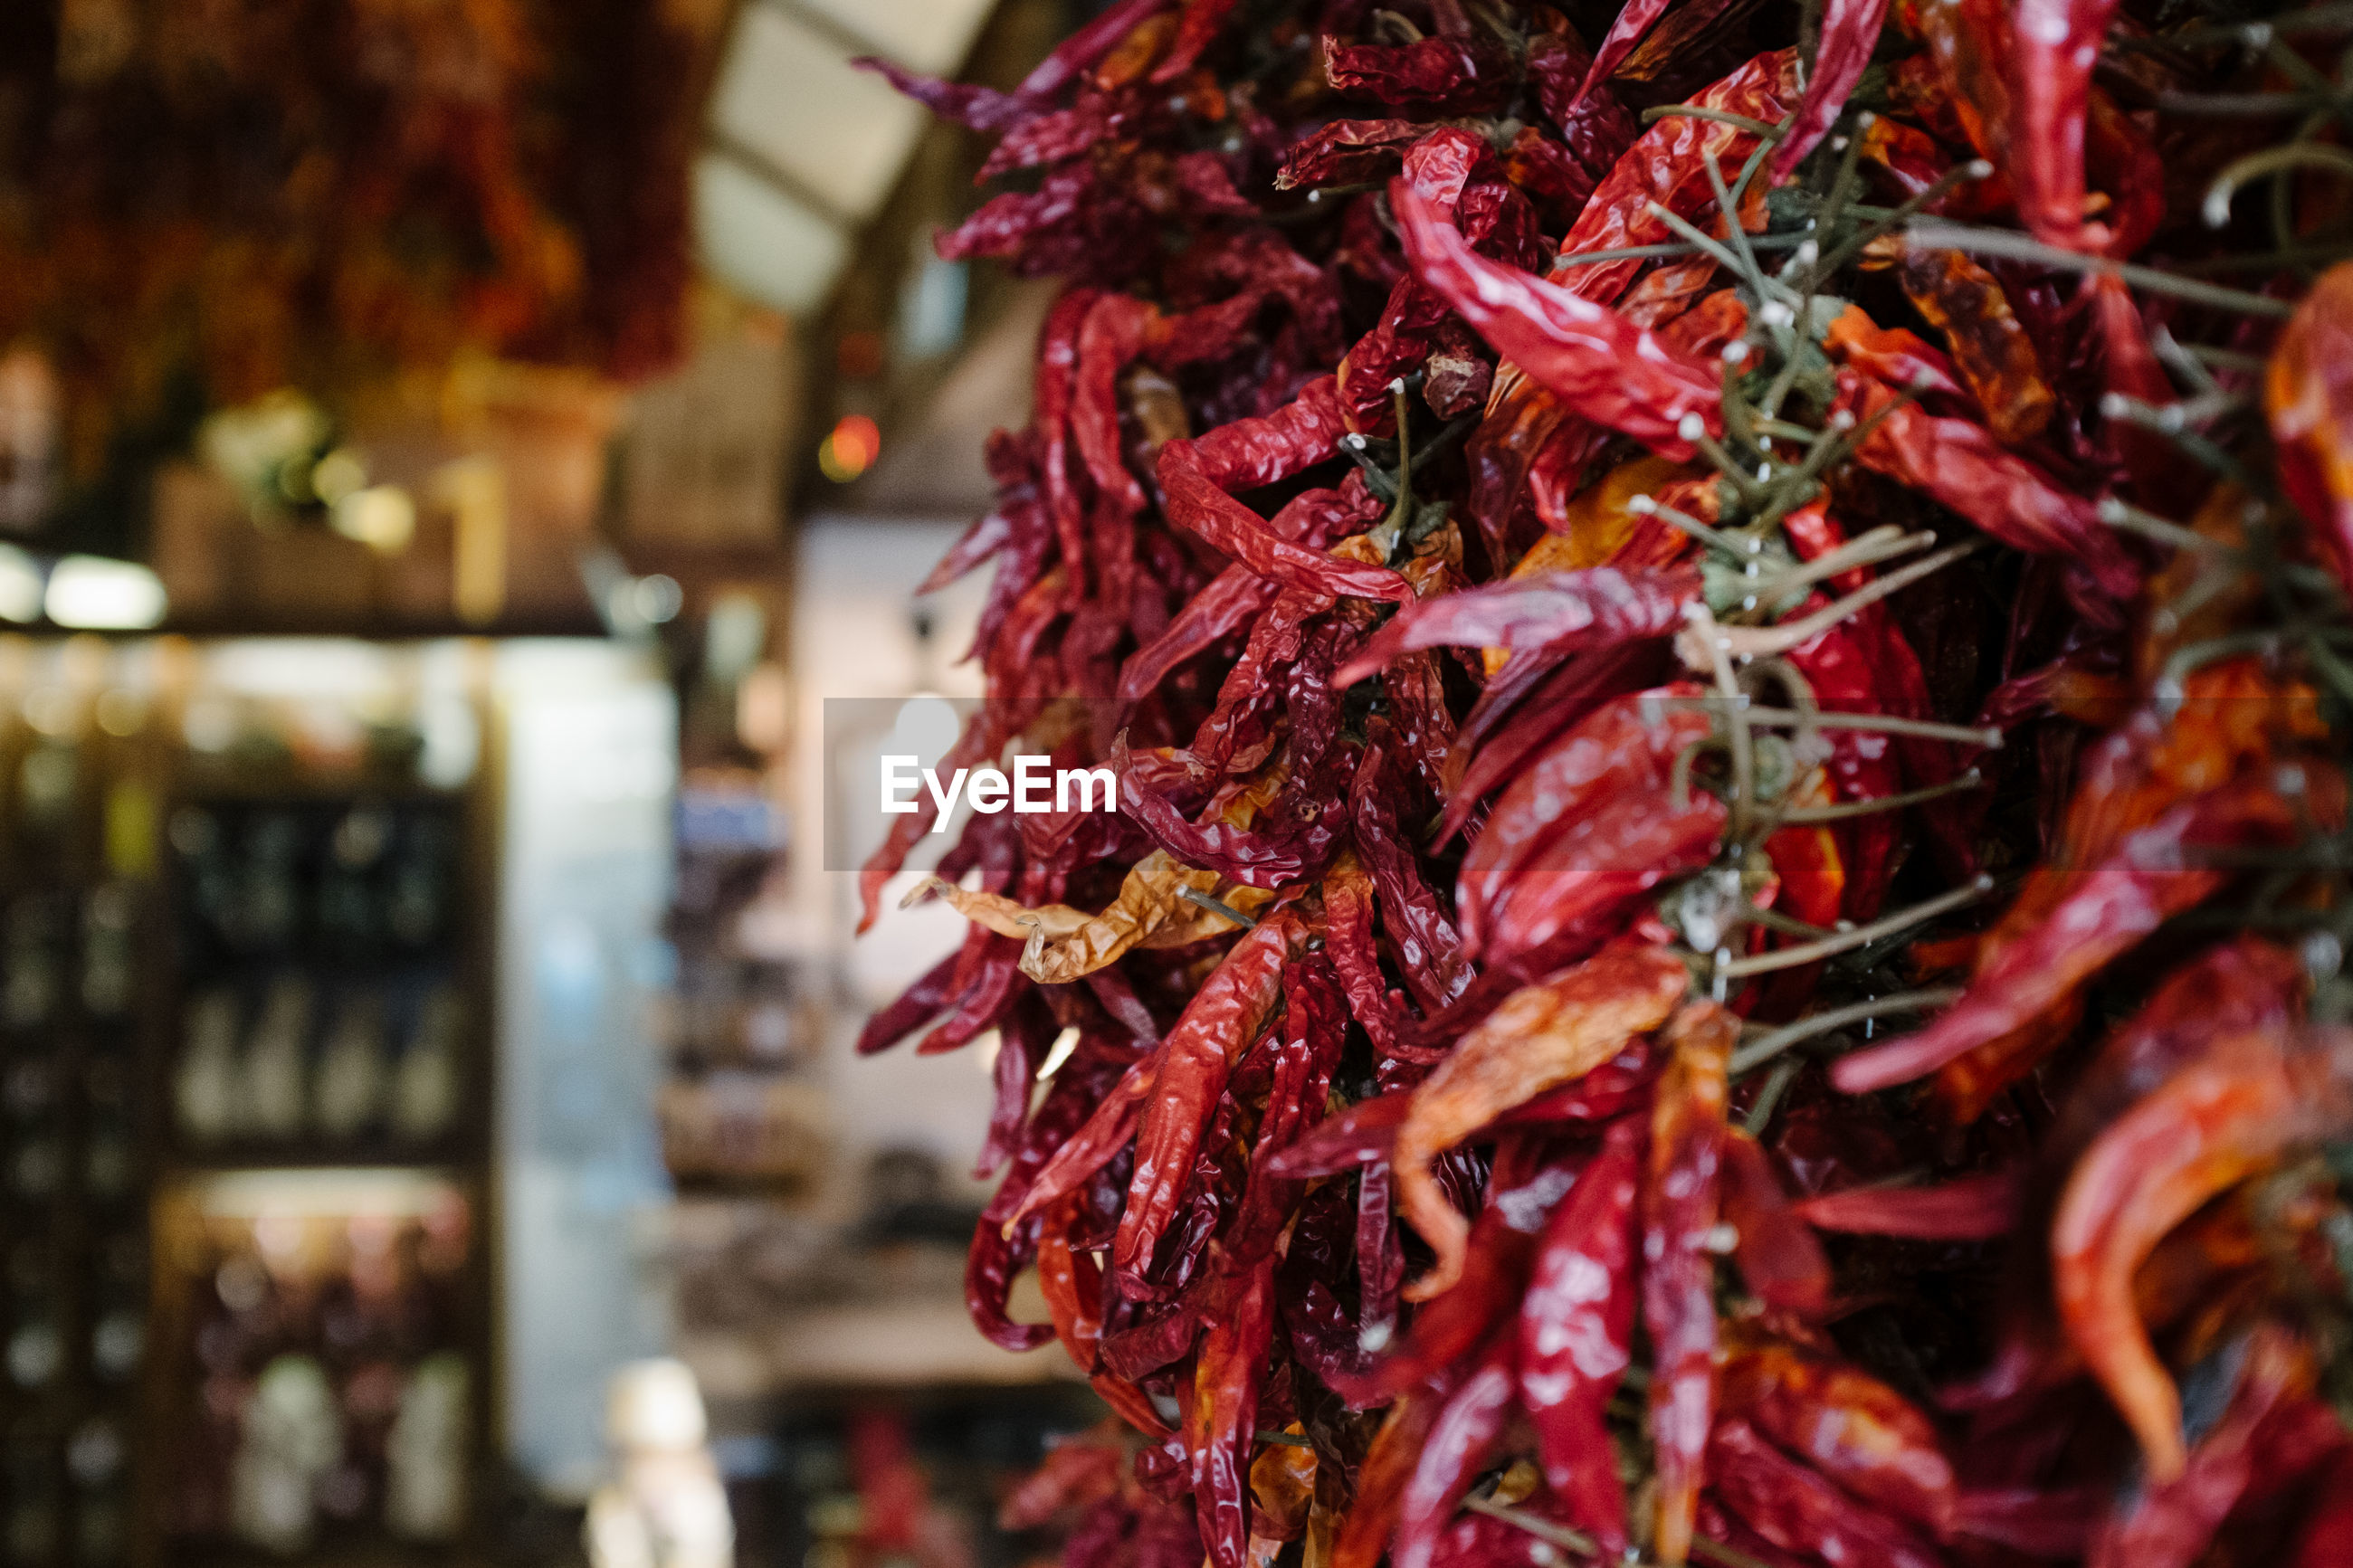 CLOSE-UP OF RED CHILI PEPPER FOR SALE IN MARKET